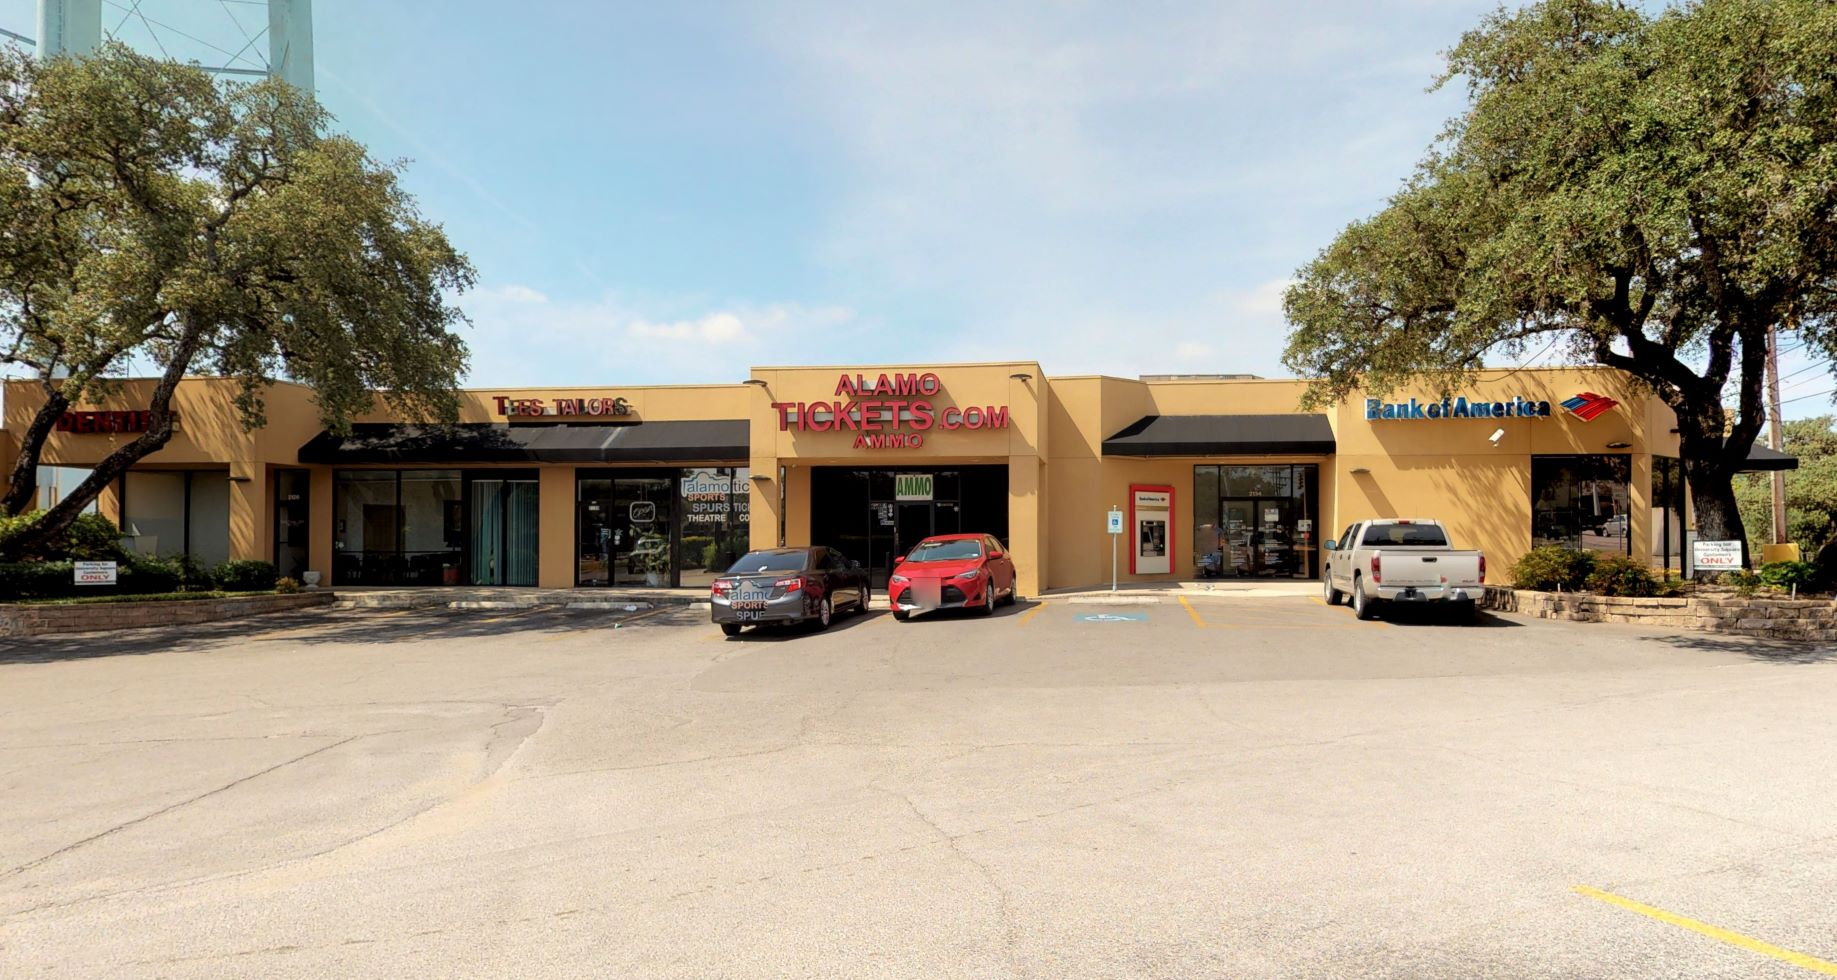 Bank of America financial center with drive-thru ATM   2134 NW Military Hwy, San Antonio, TX 78213